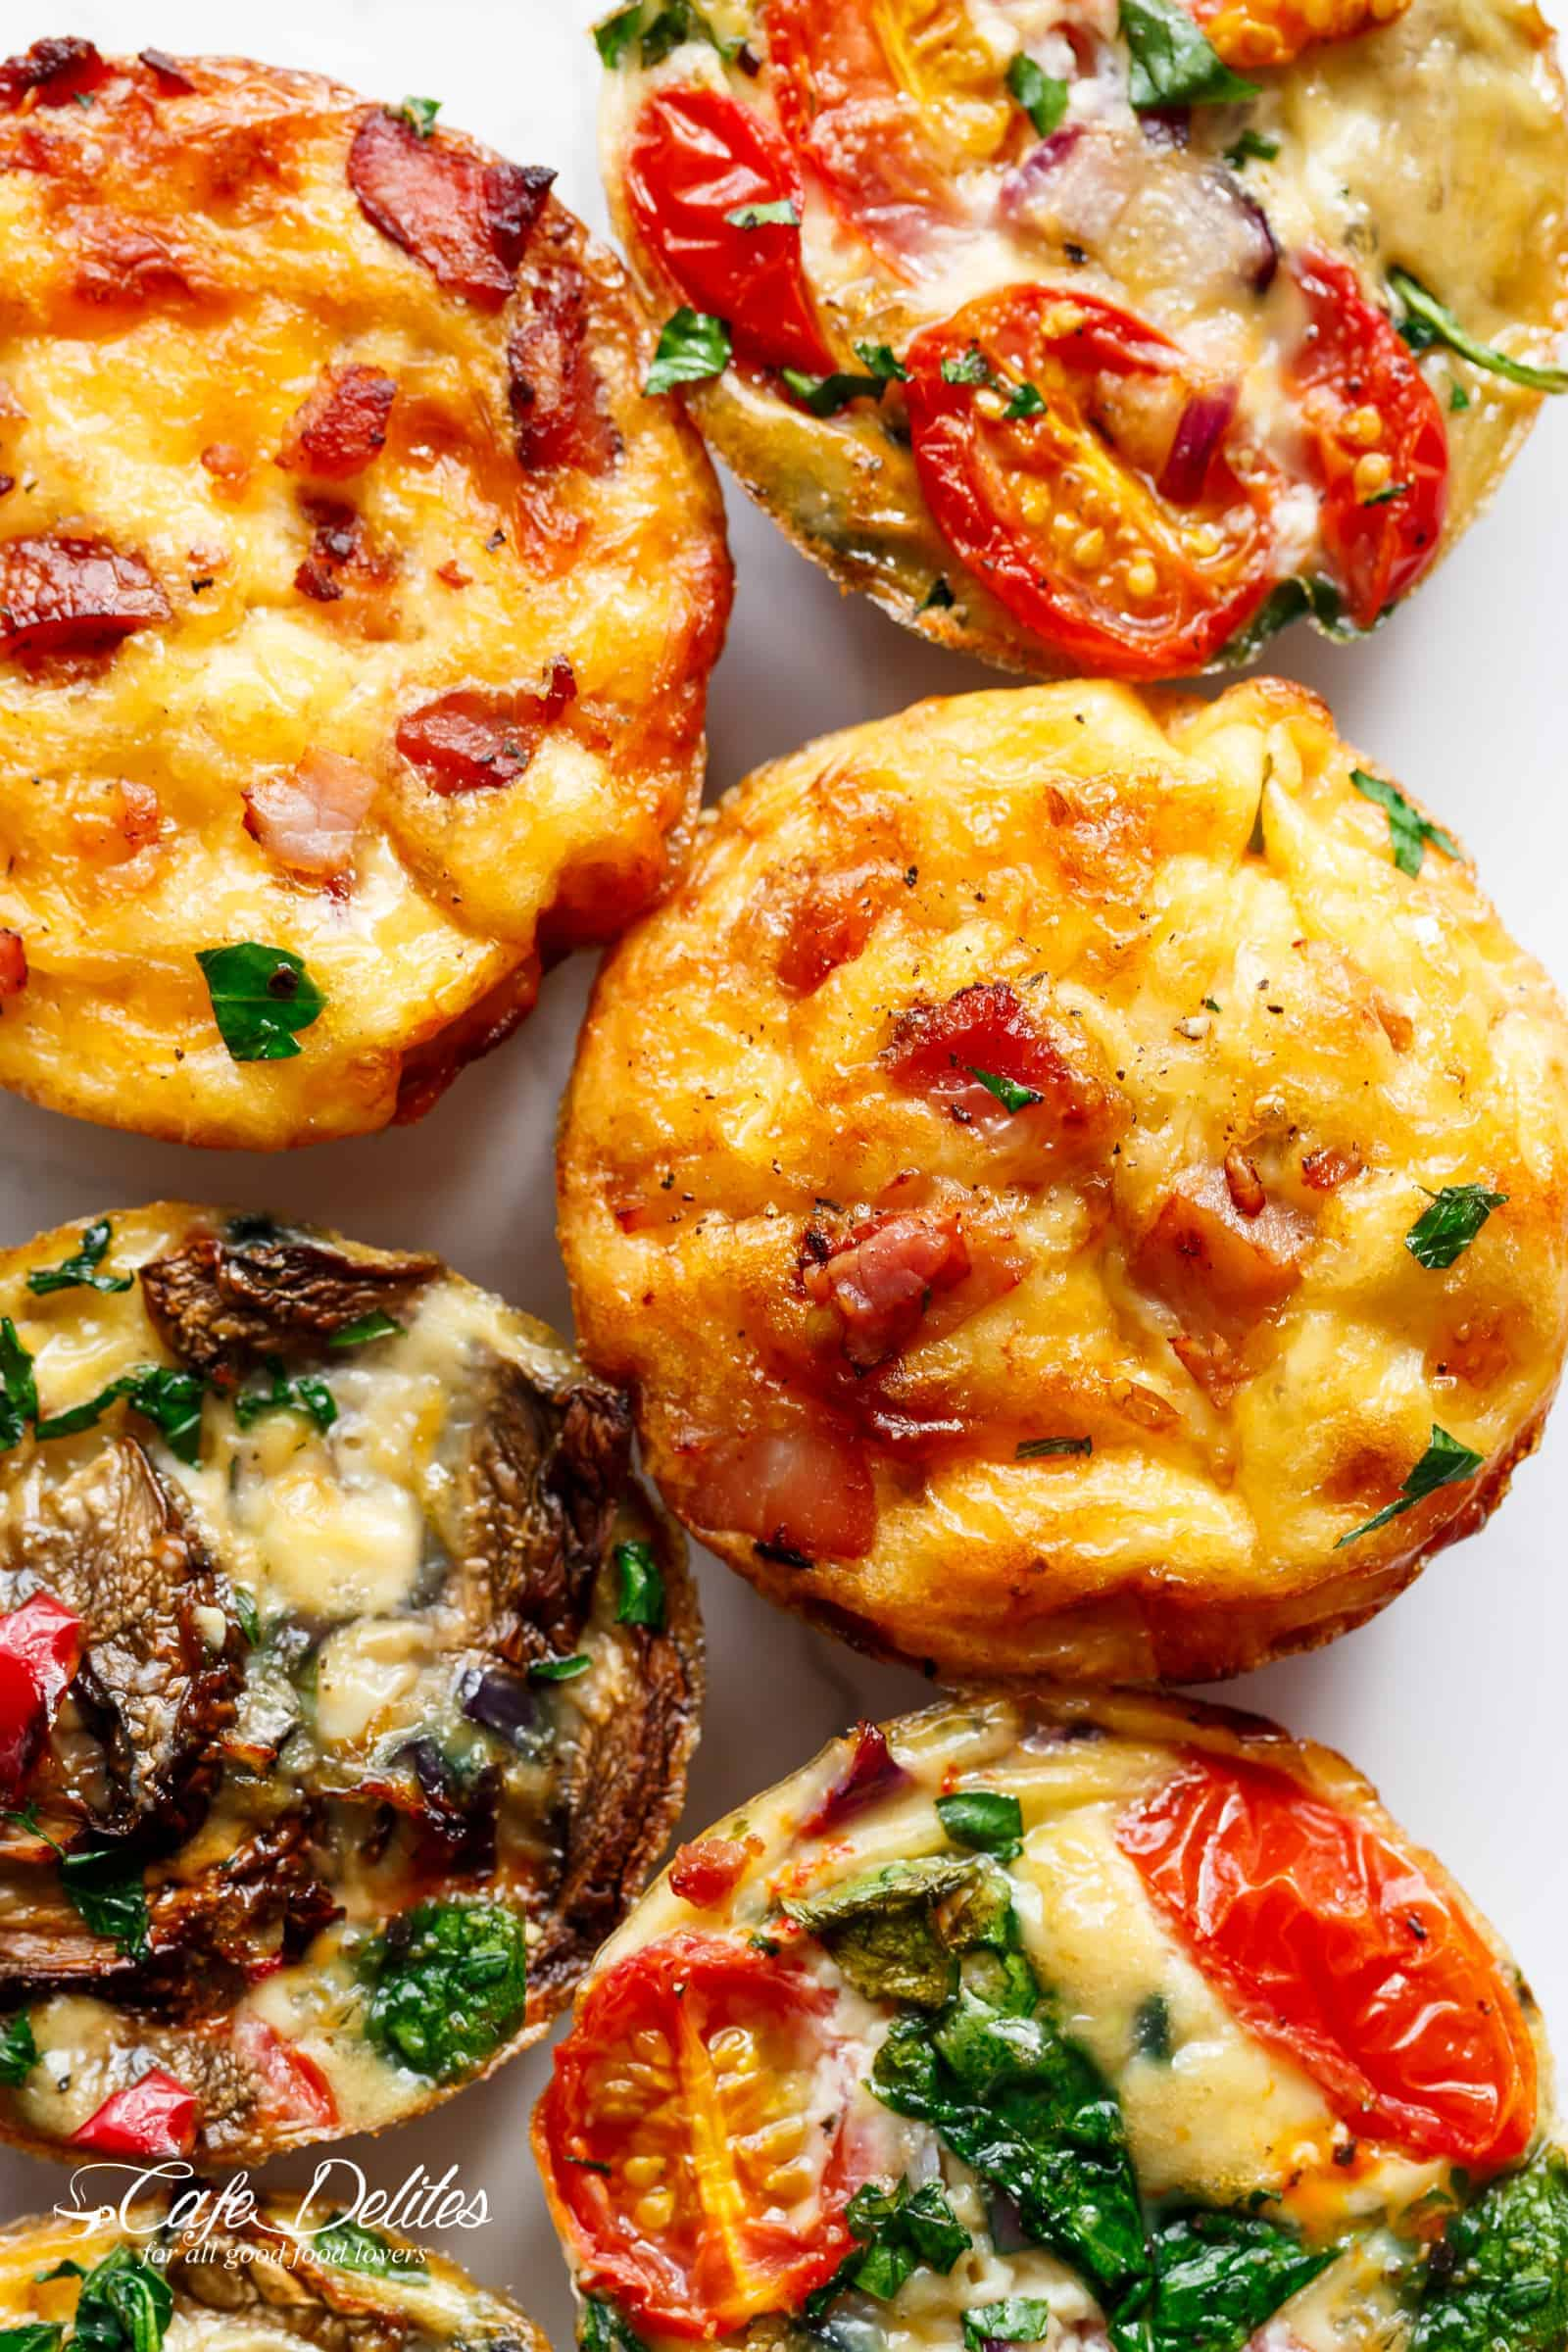 Breakfast Egg Muffins 3 Ways can be cooked ahead of time (meal prep) and refrigerated for when you need them! | cafedelites.com